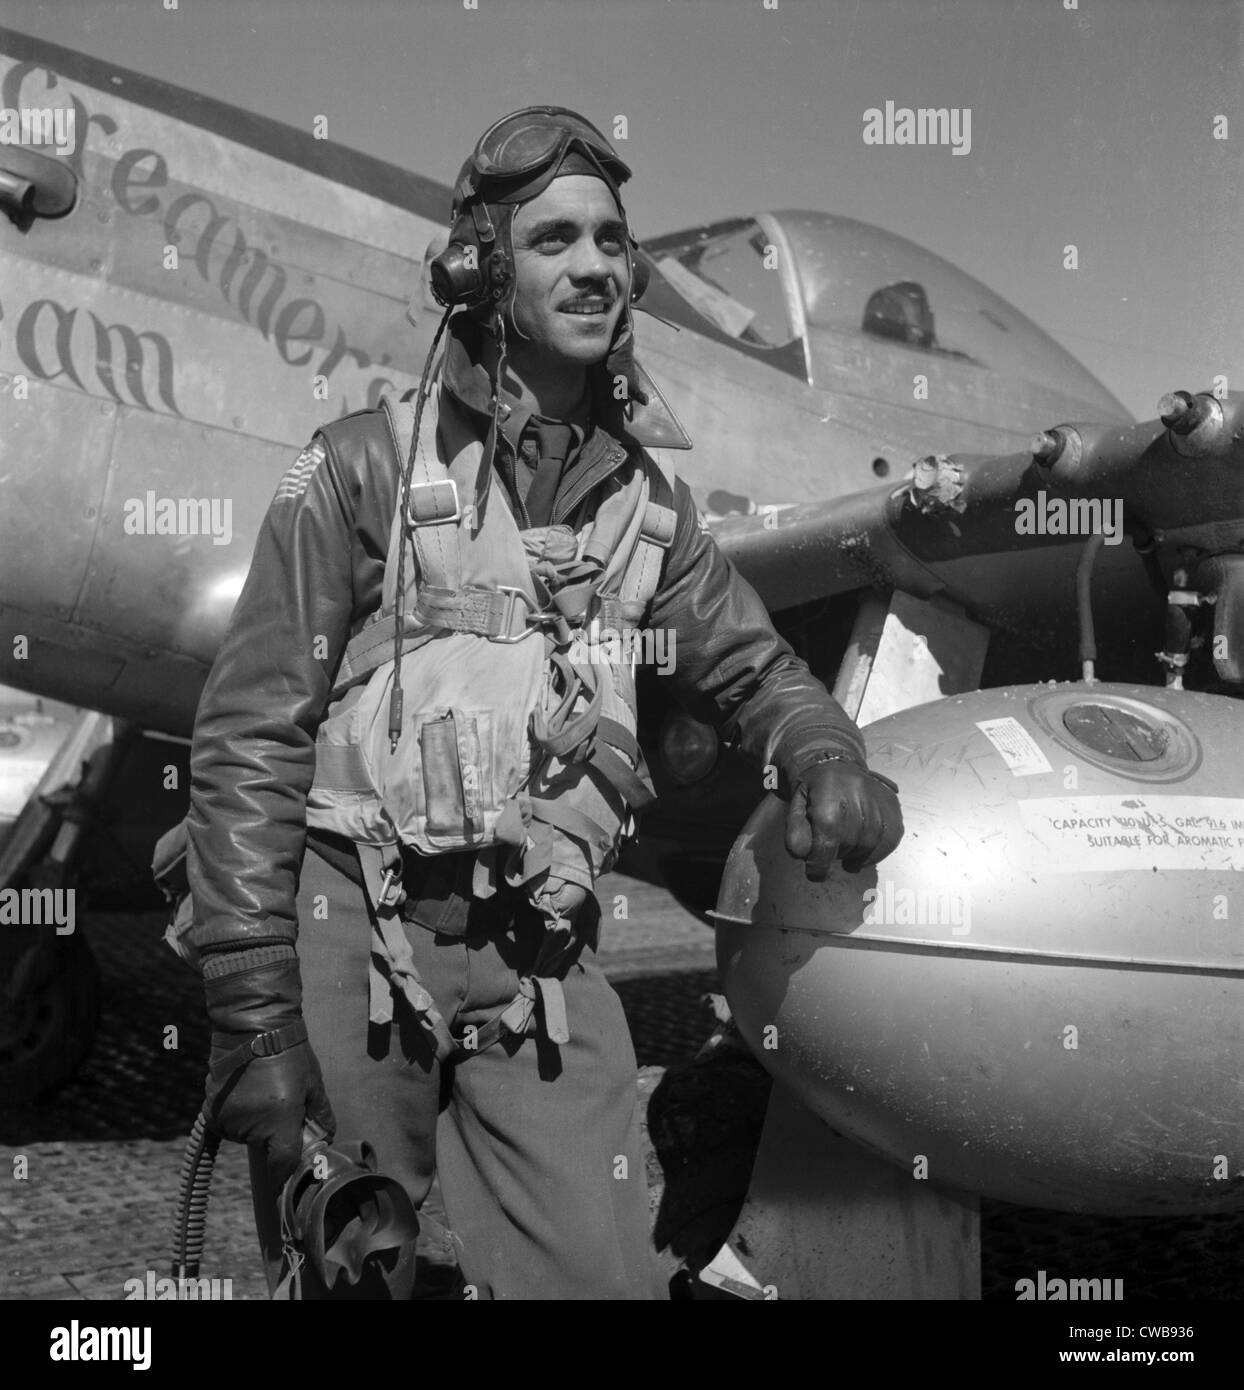 A Tuskegee fighter pilot poses with his P-51D Mustang, Ramitelli, Italy, March 1945.  Photograph by Toni Frissell. - Stock Image